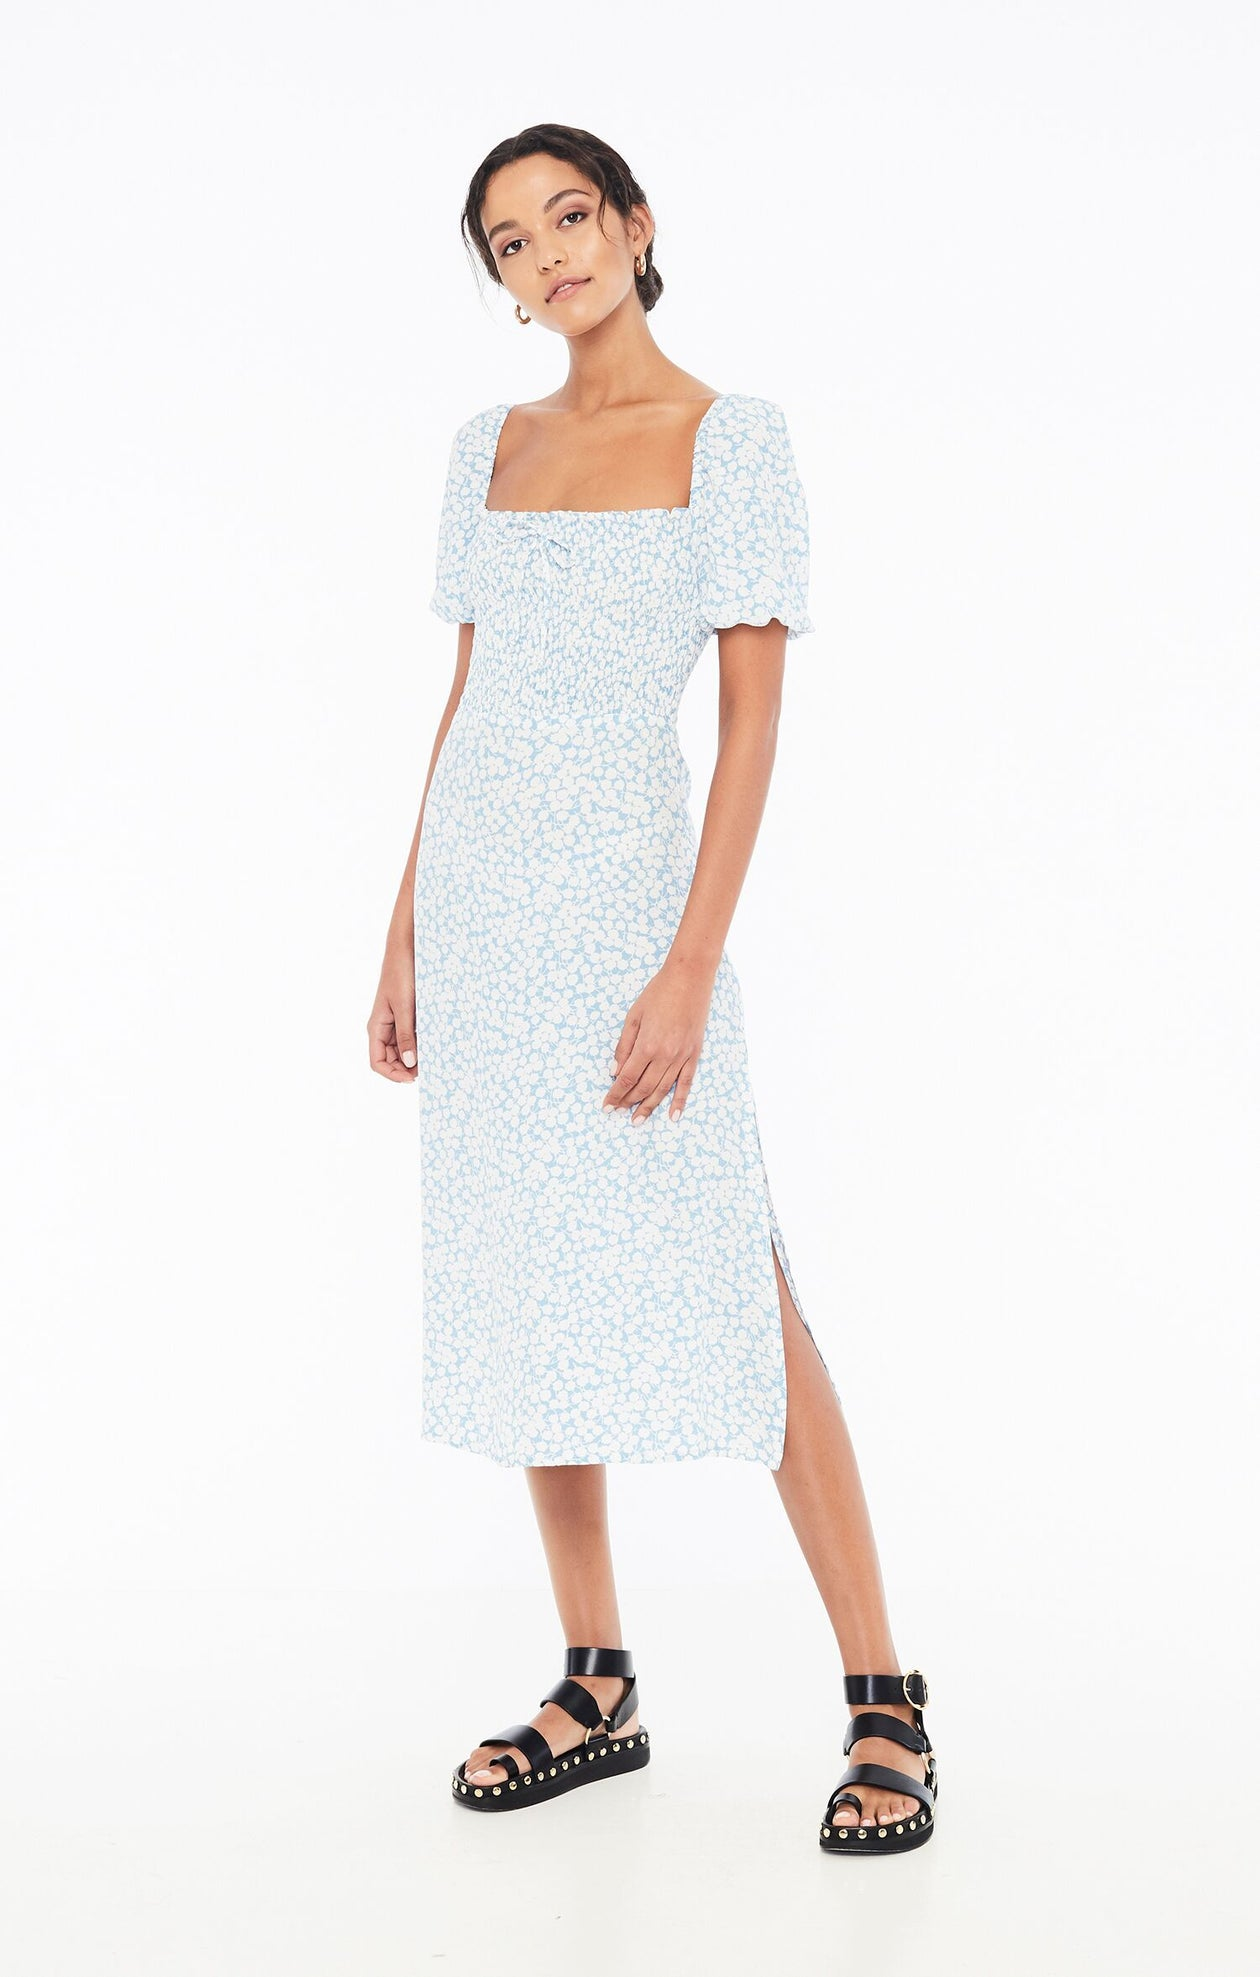 Majorelle Midi Dress in Bella Floral Print Riviera Blue by Faithfull The Brand | Womens Midi Dresses